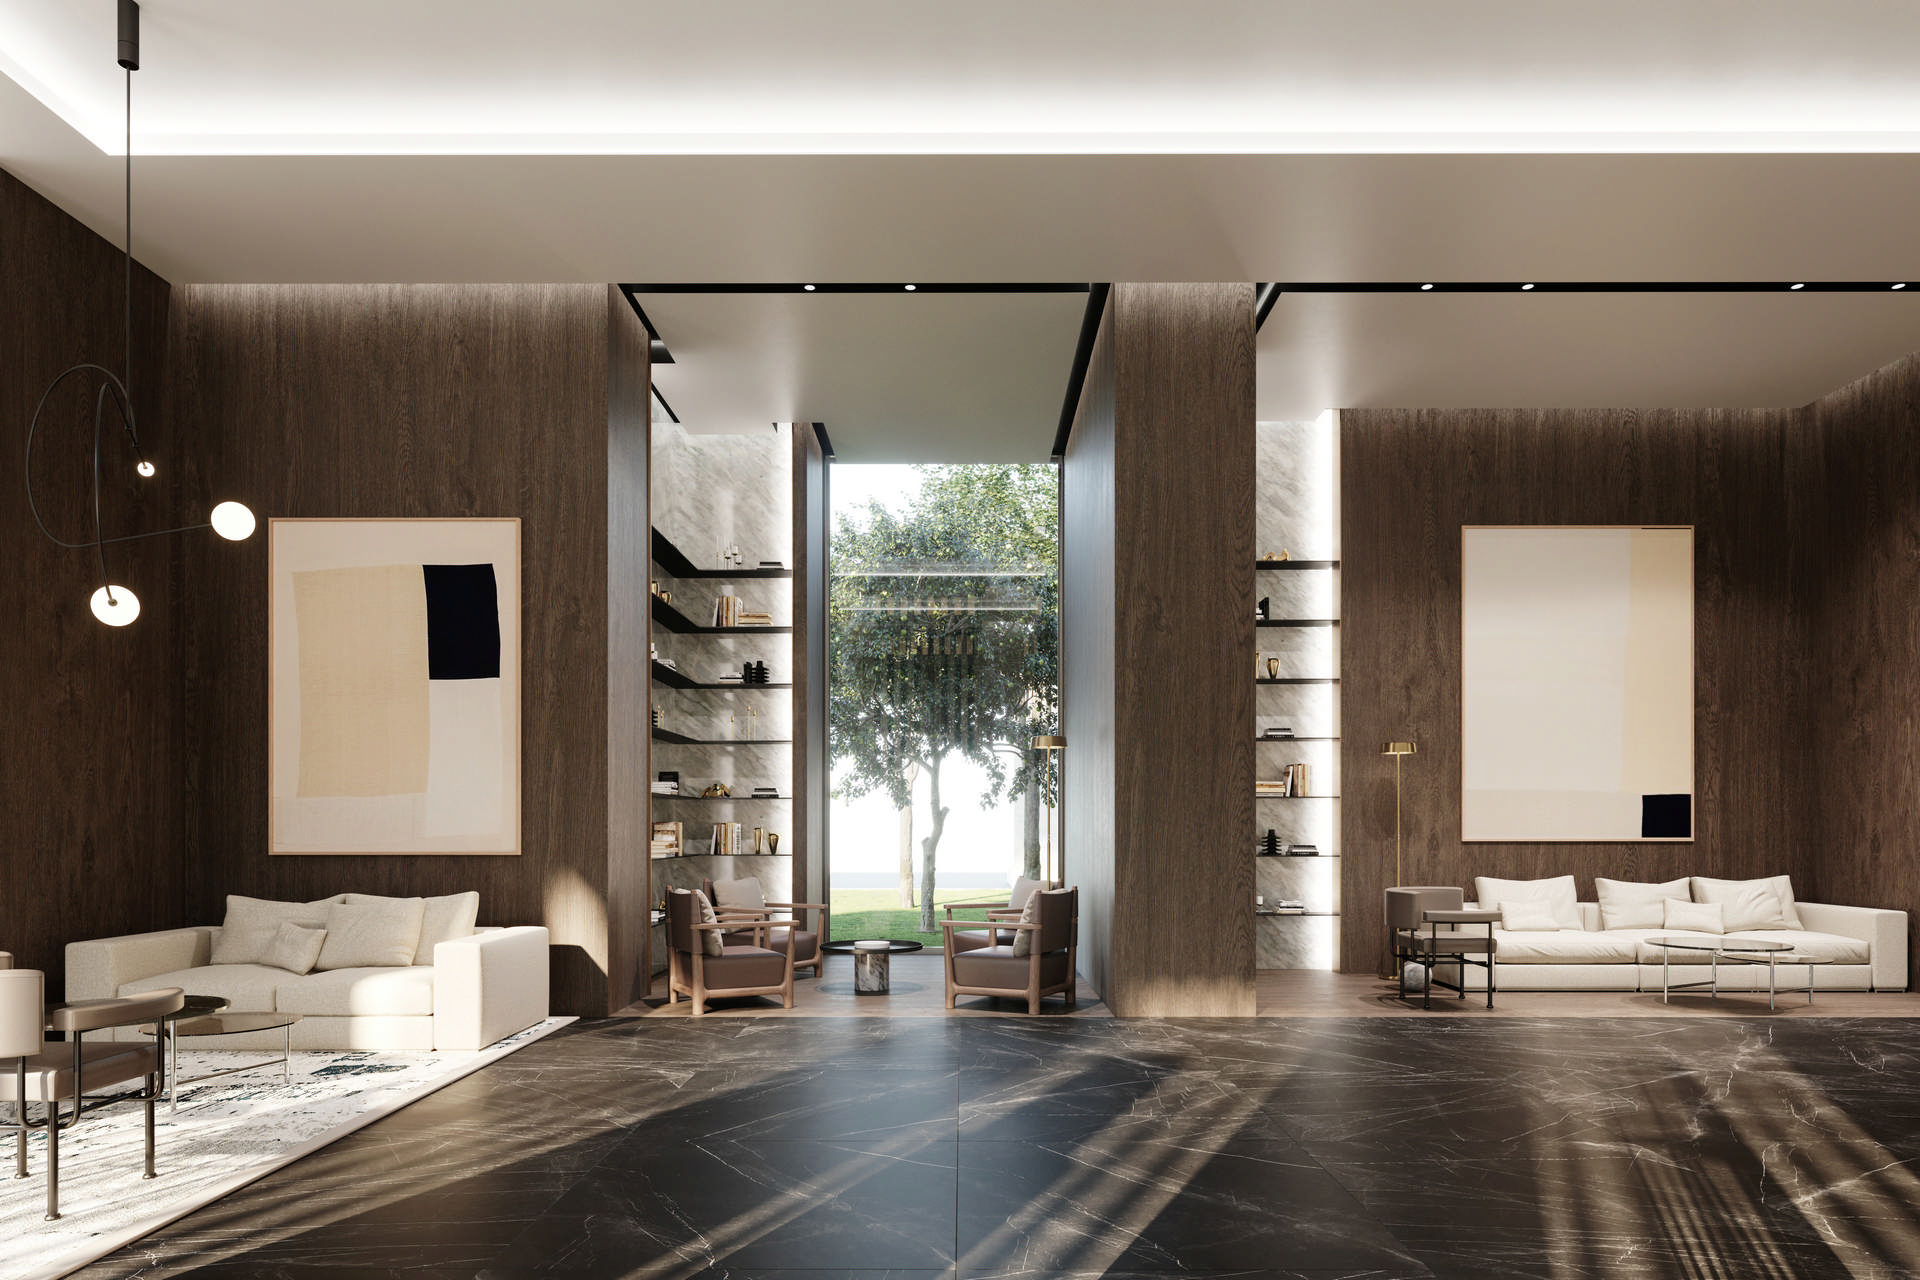 rendering, 3D, architectural visualization, virtual reality, VR 360, render, best renders, real estate marketing, virtual staging